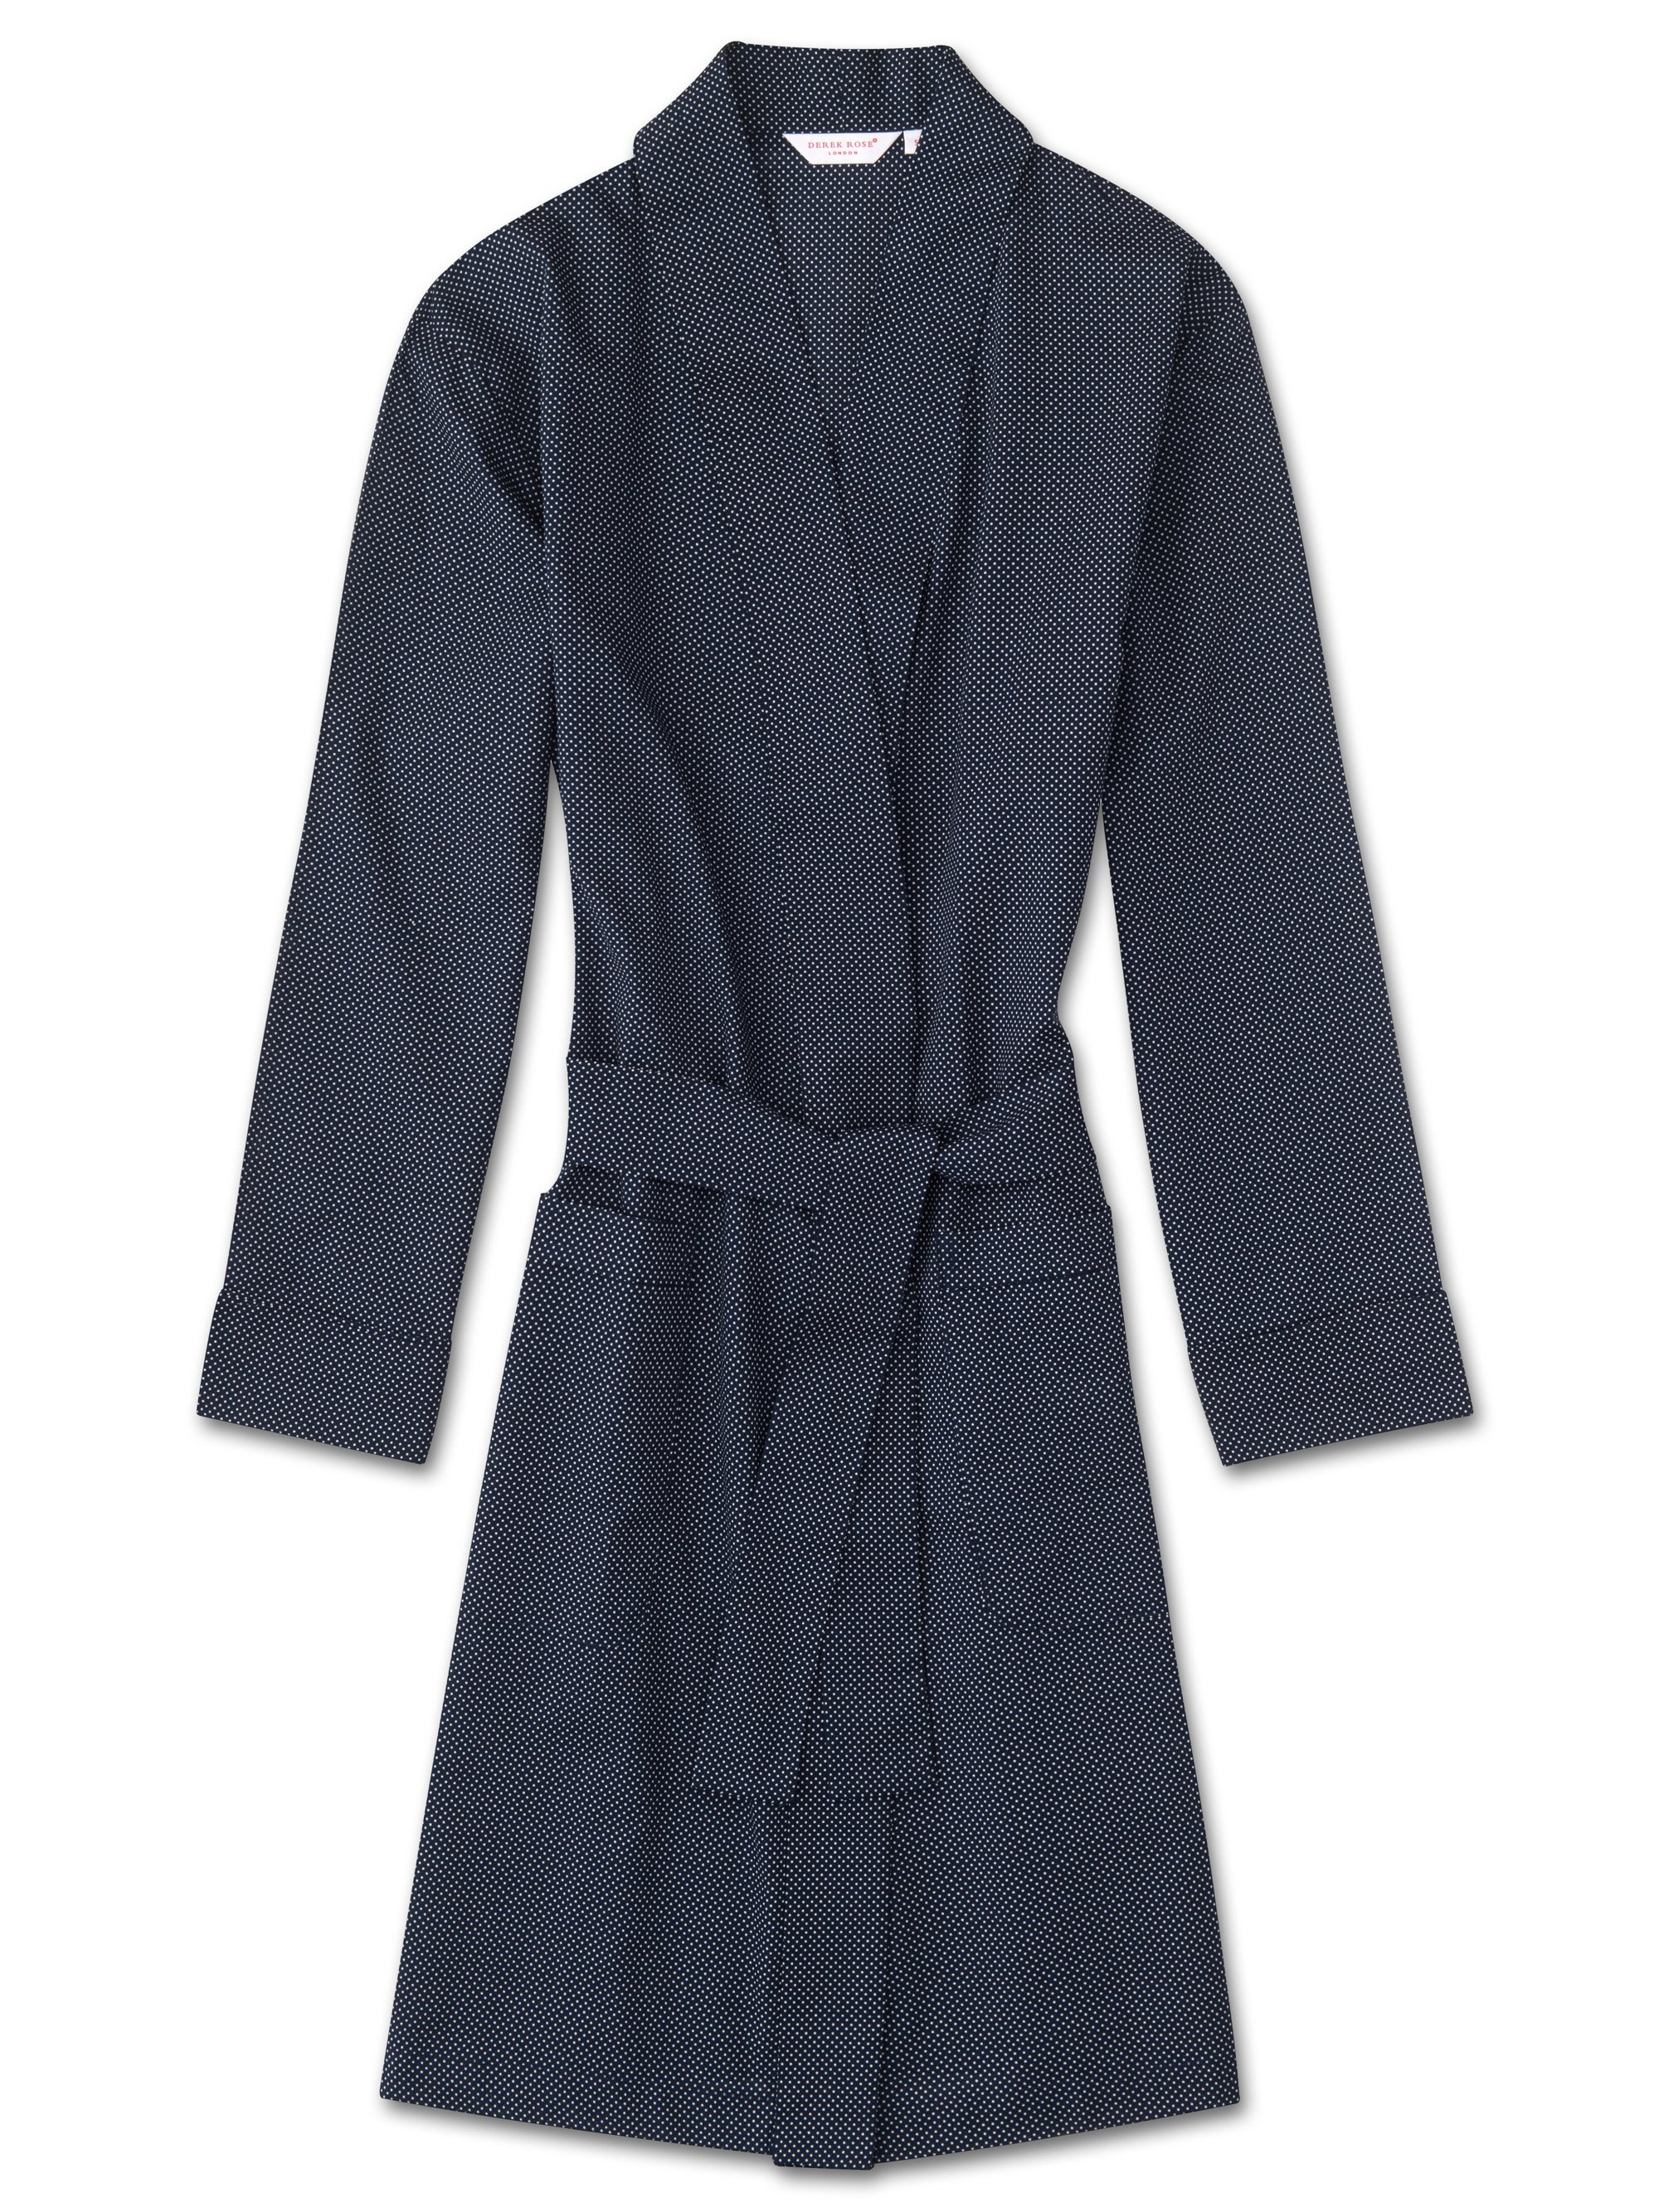 Women's Dressing Gown Plaza 21 Cotton Batiste Polka Dot Navy